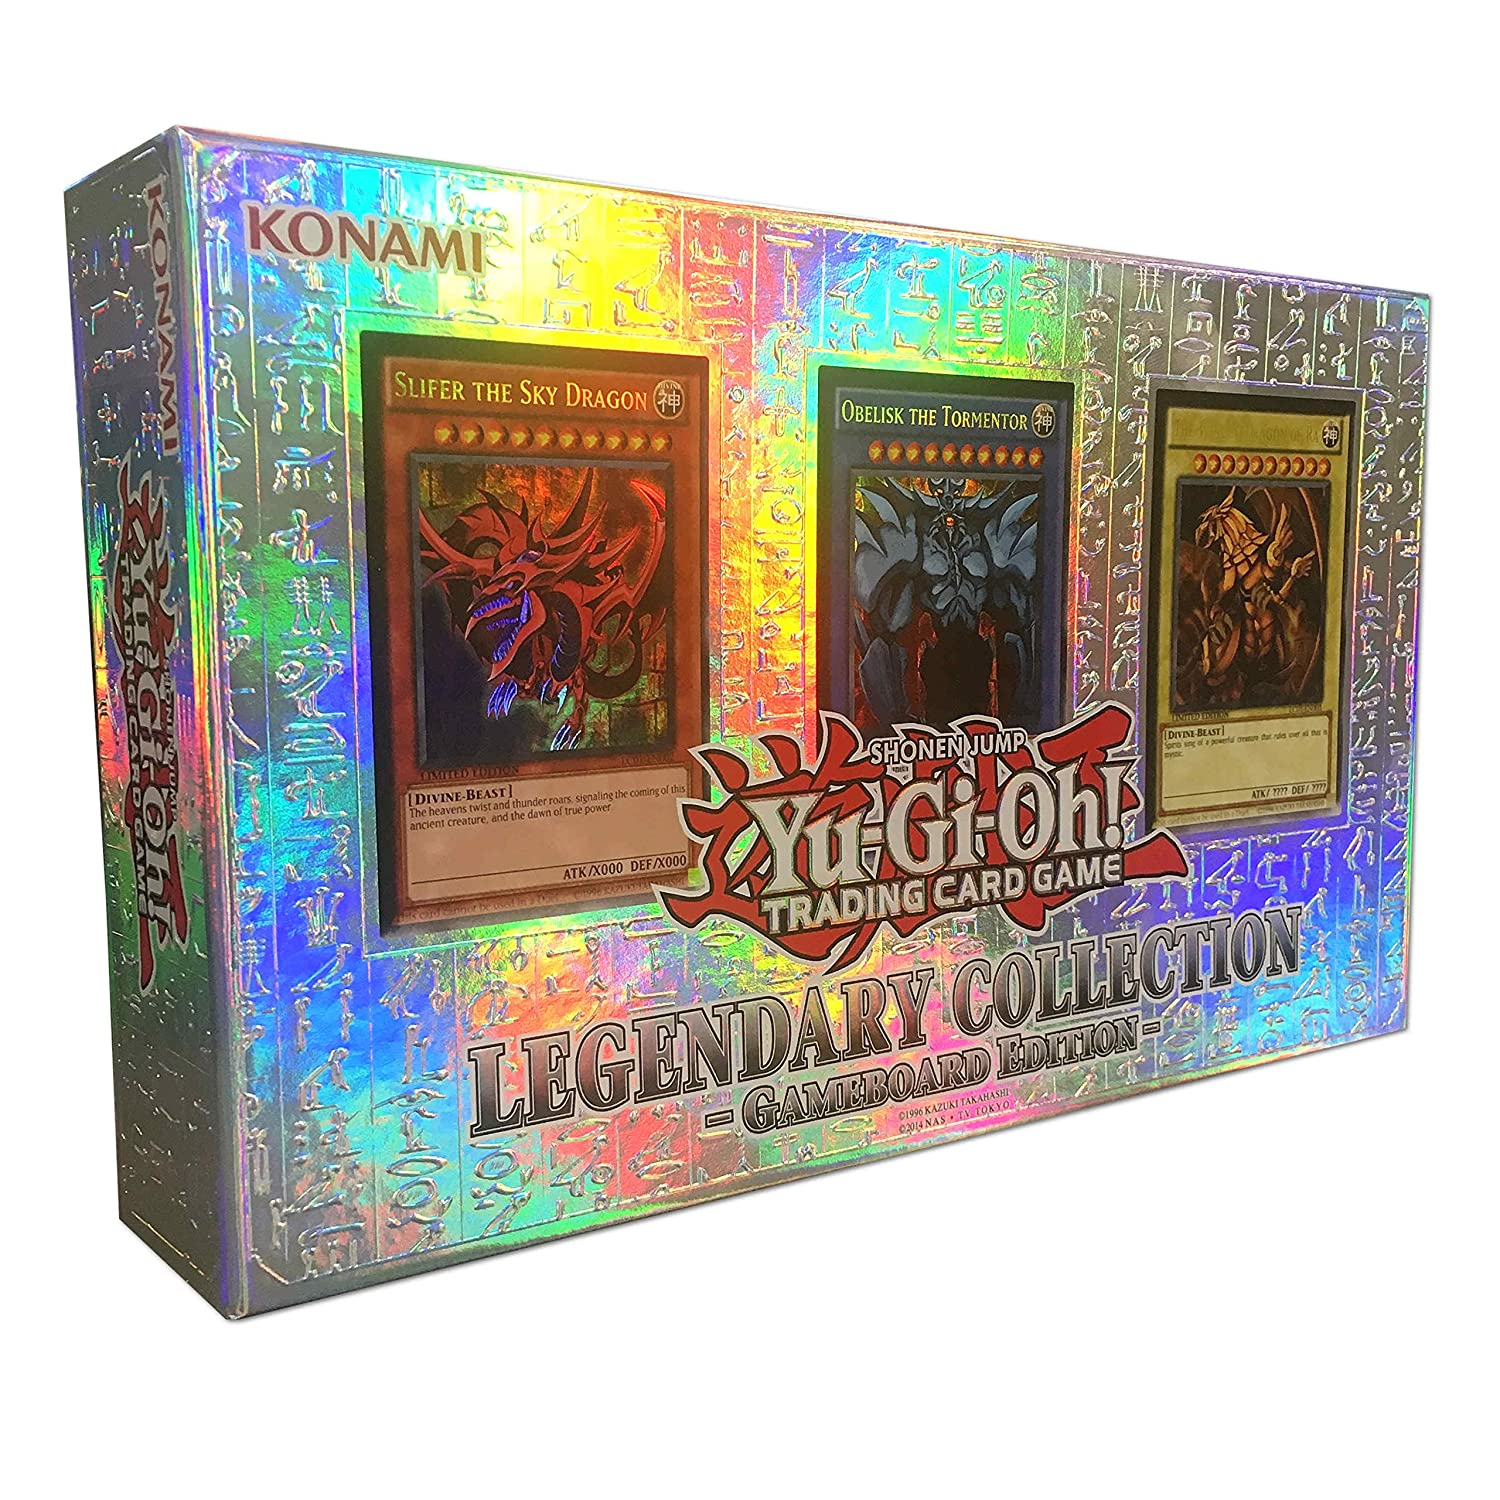 Yu-Gi-Oh! Legendary Collection 1 Box Gameboard Edition Yu-Gi-Oh! Cards